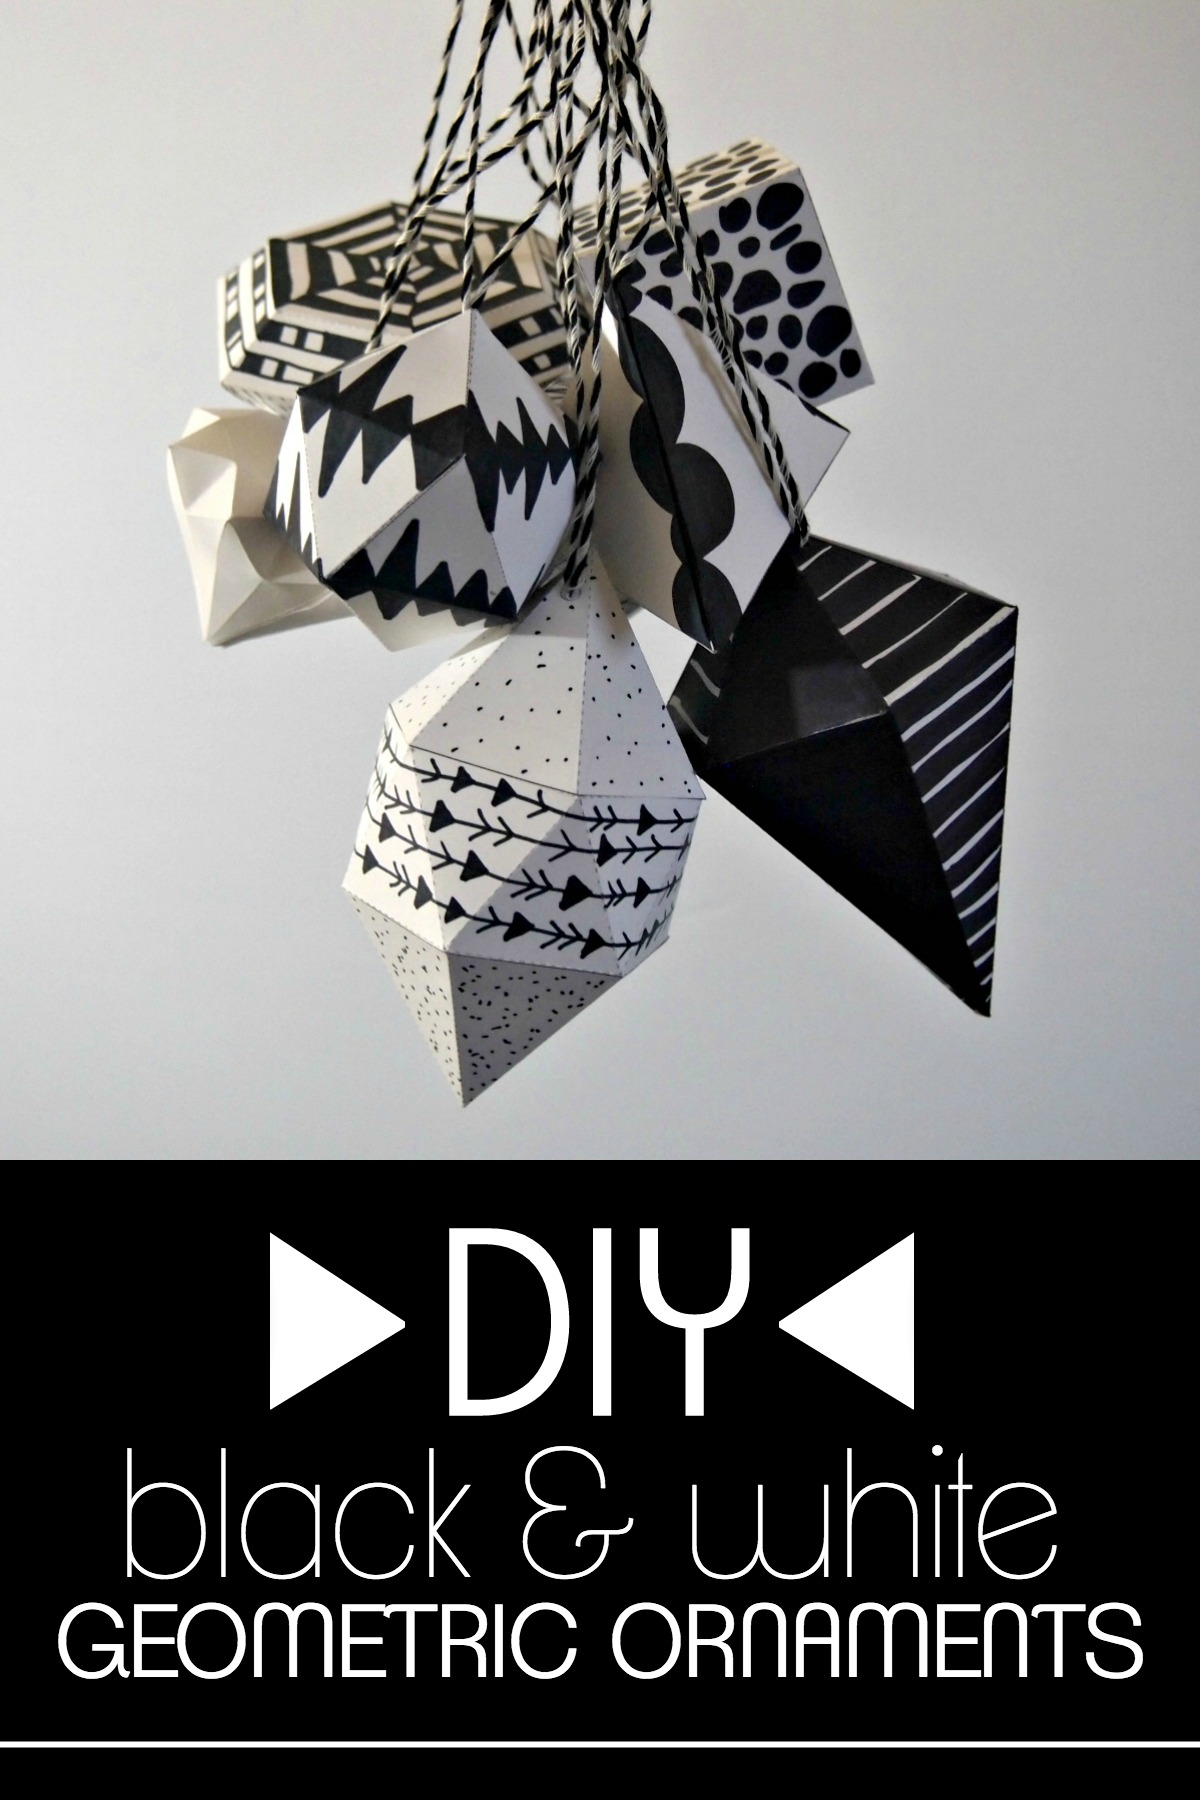 DIY black and white geometric ornaments DIY Black and White Geometric Ornaments